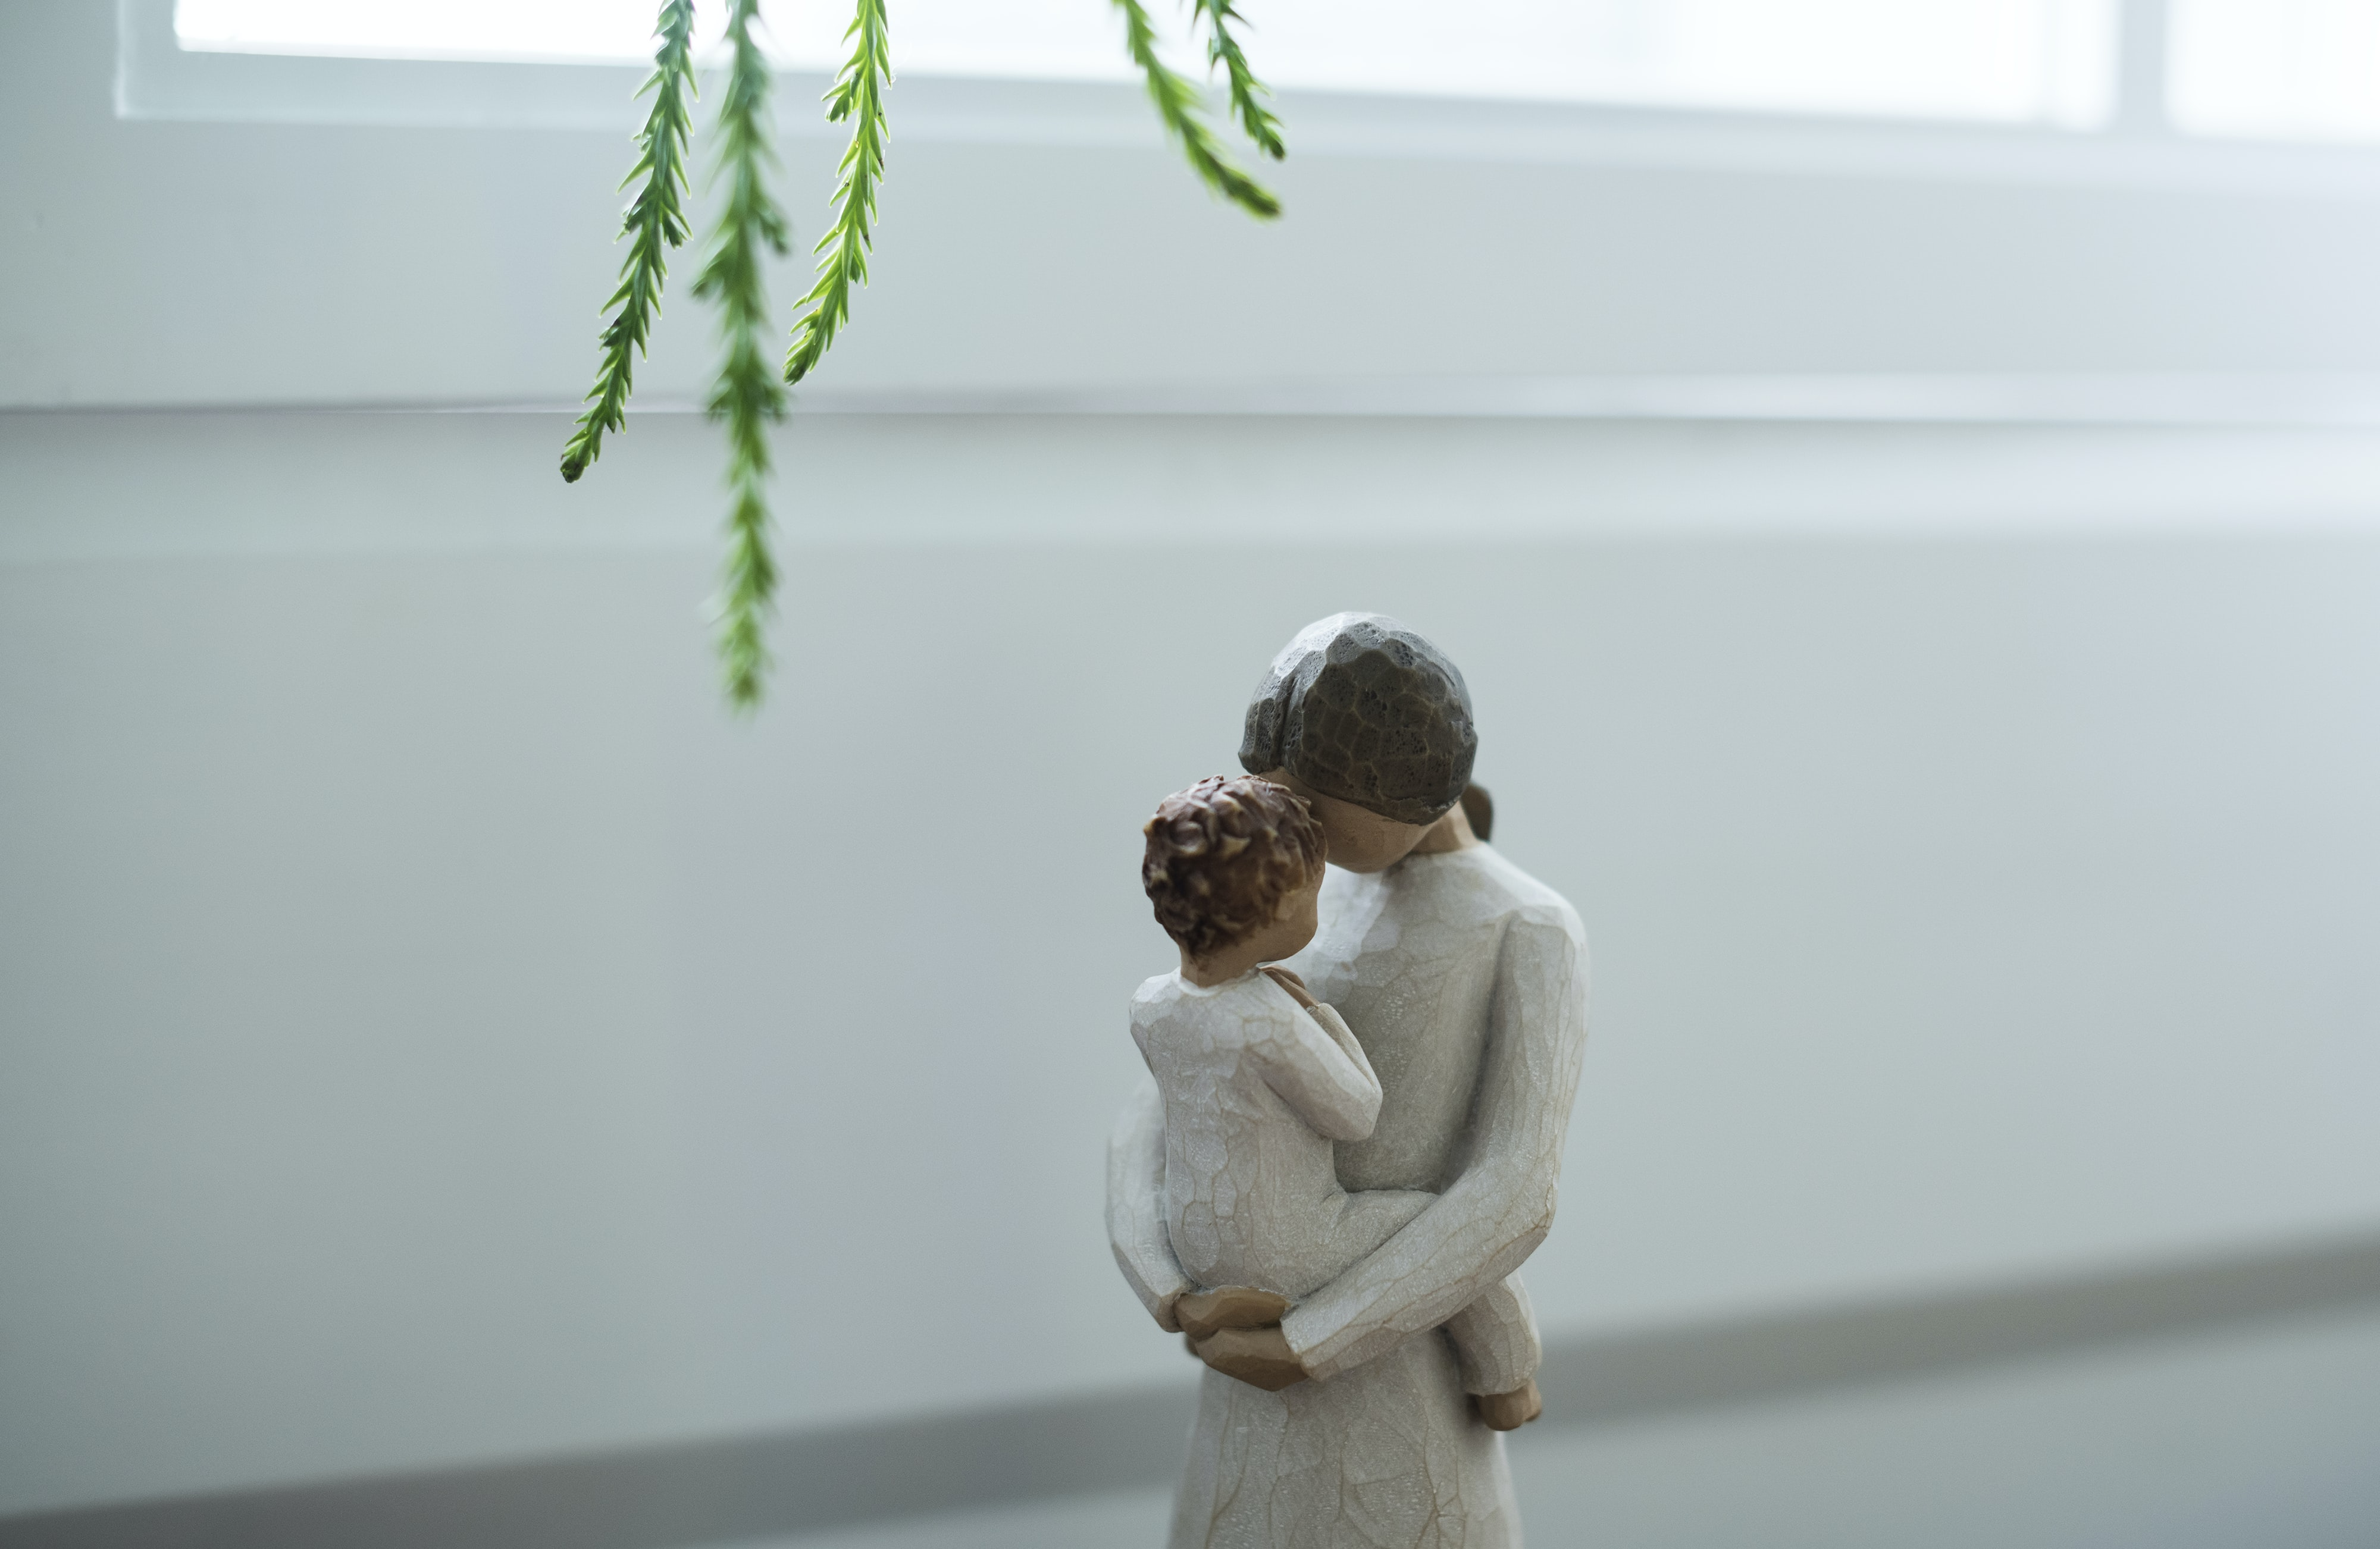 ceramic woman carrying baby figurine